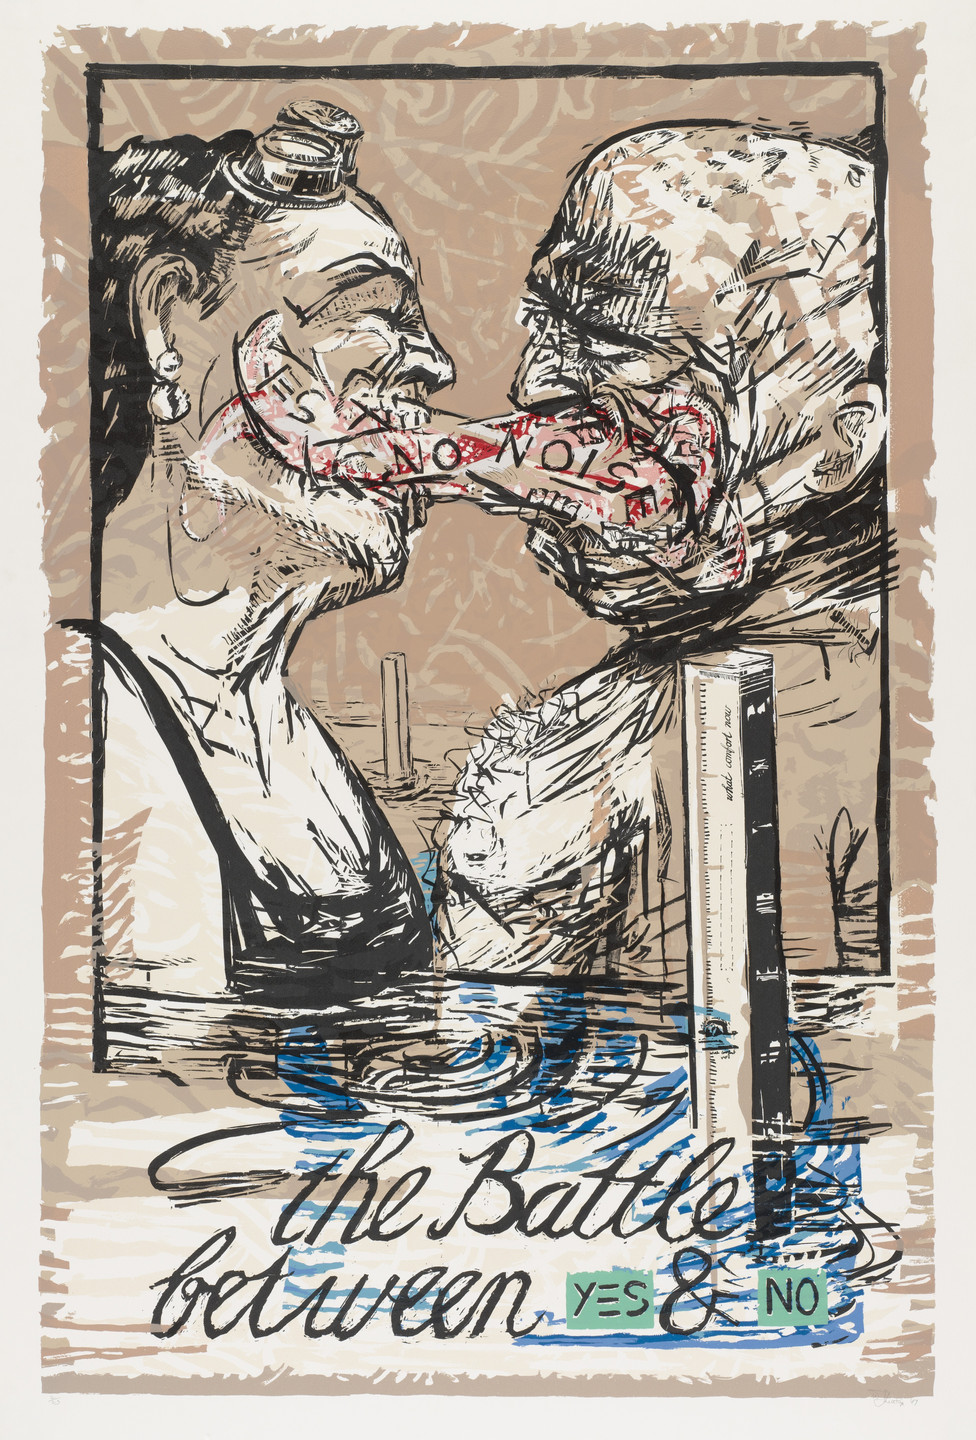 William Kentridge. The Battle Between Yes and No. 1989